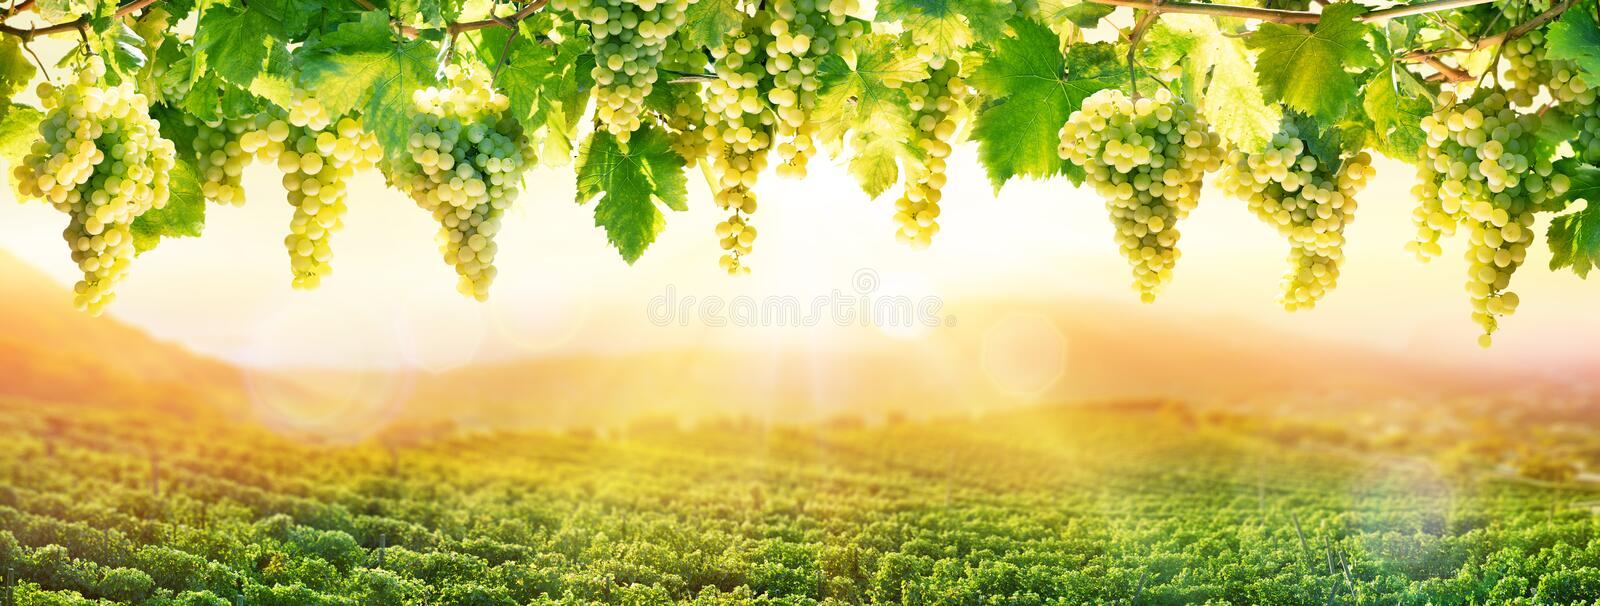 Viticulture At Sunset - White Grapes Hanging royalty free stock photos